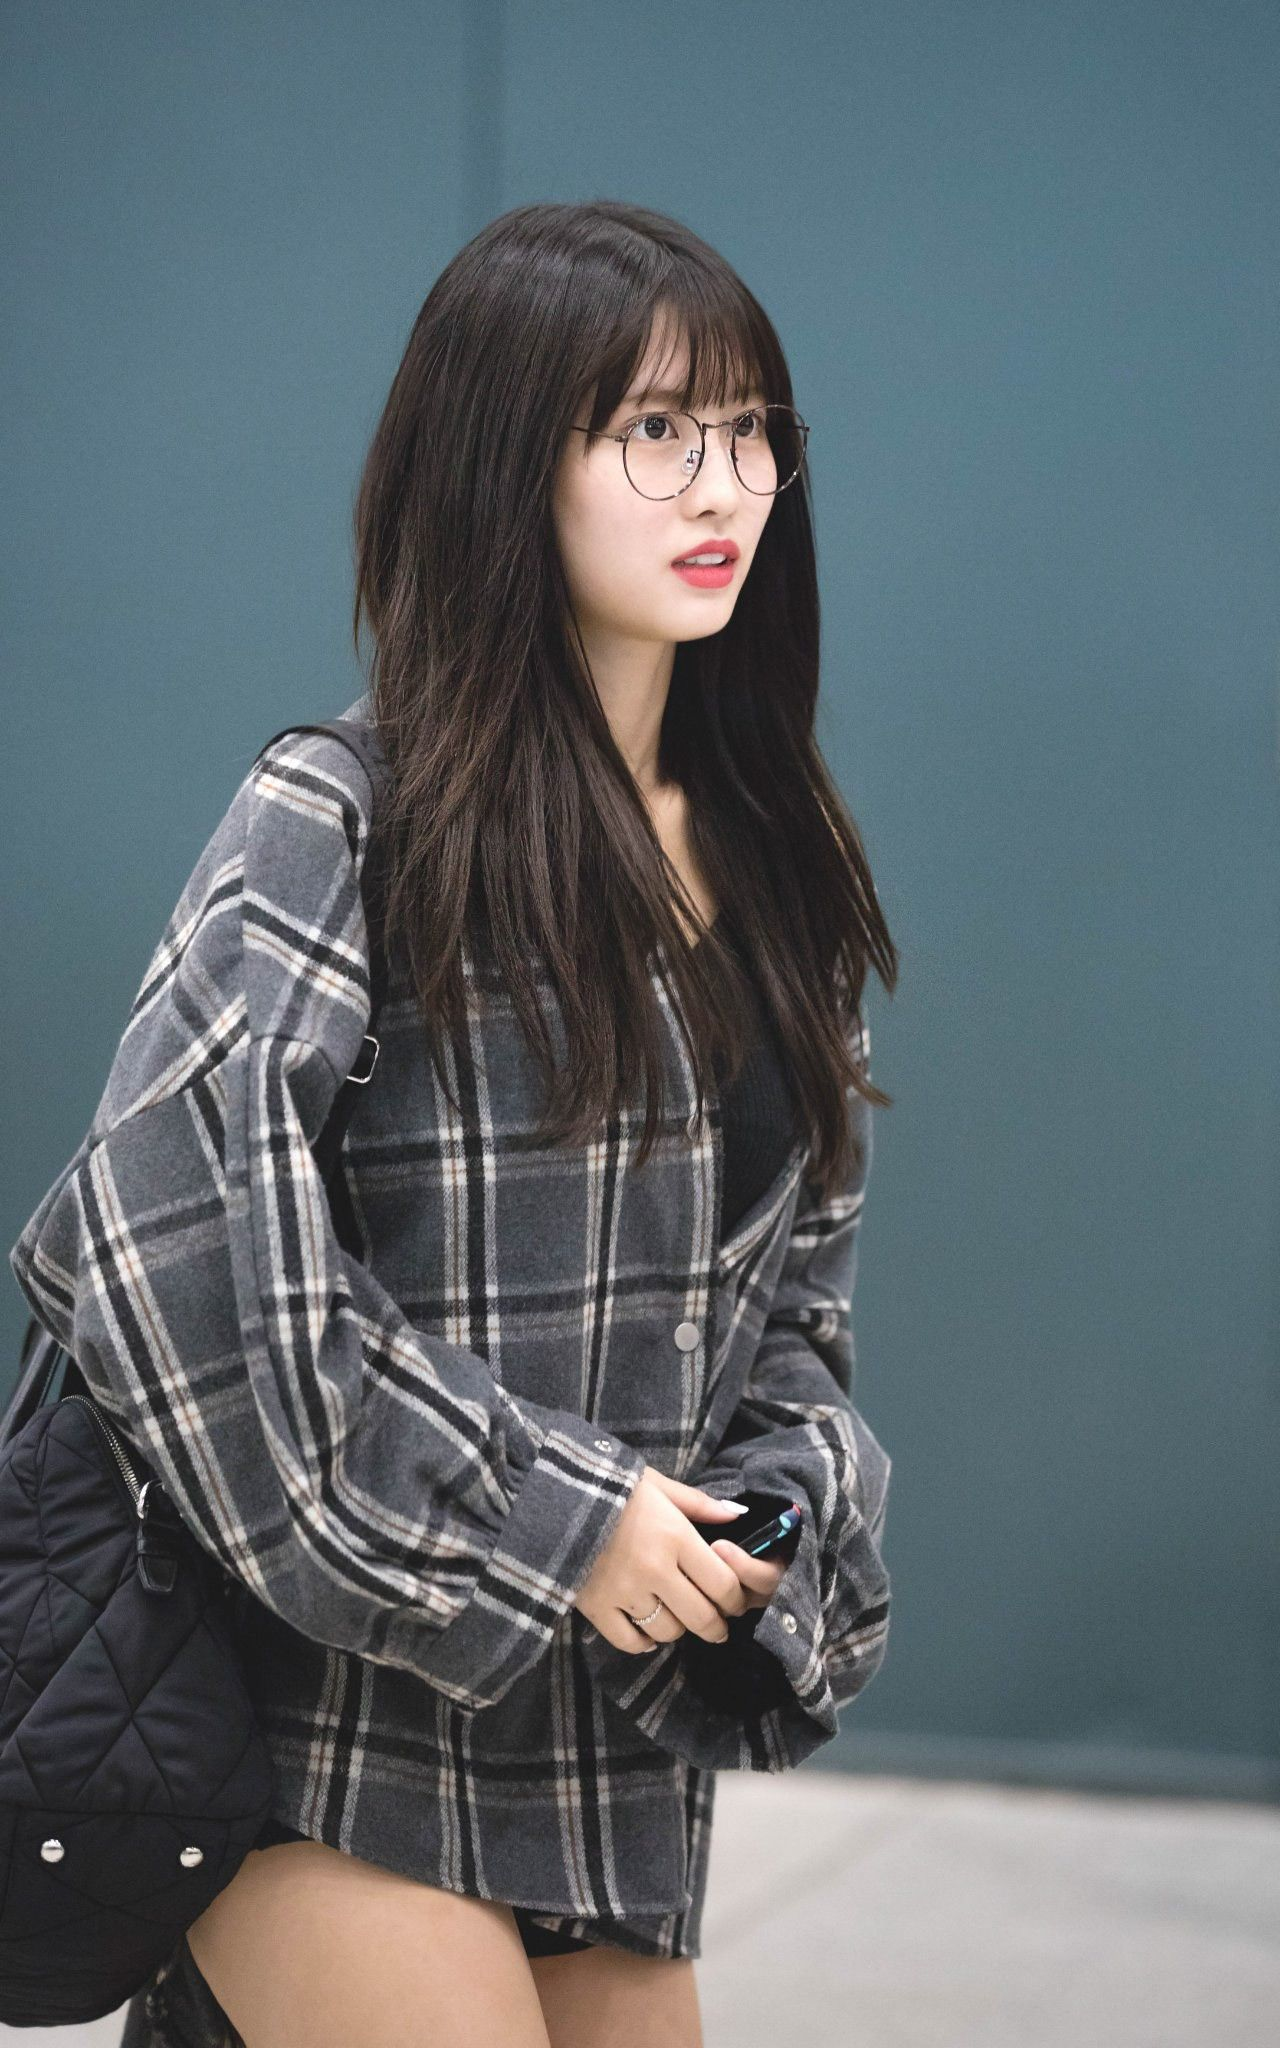 27 08 2018 Momo A Group Of Girls In The Morning Group Arrives At Incheon International Airport Located In Unseo Dong Incheon Me Momo Kpop Girls Korean Girl